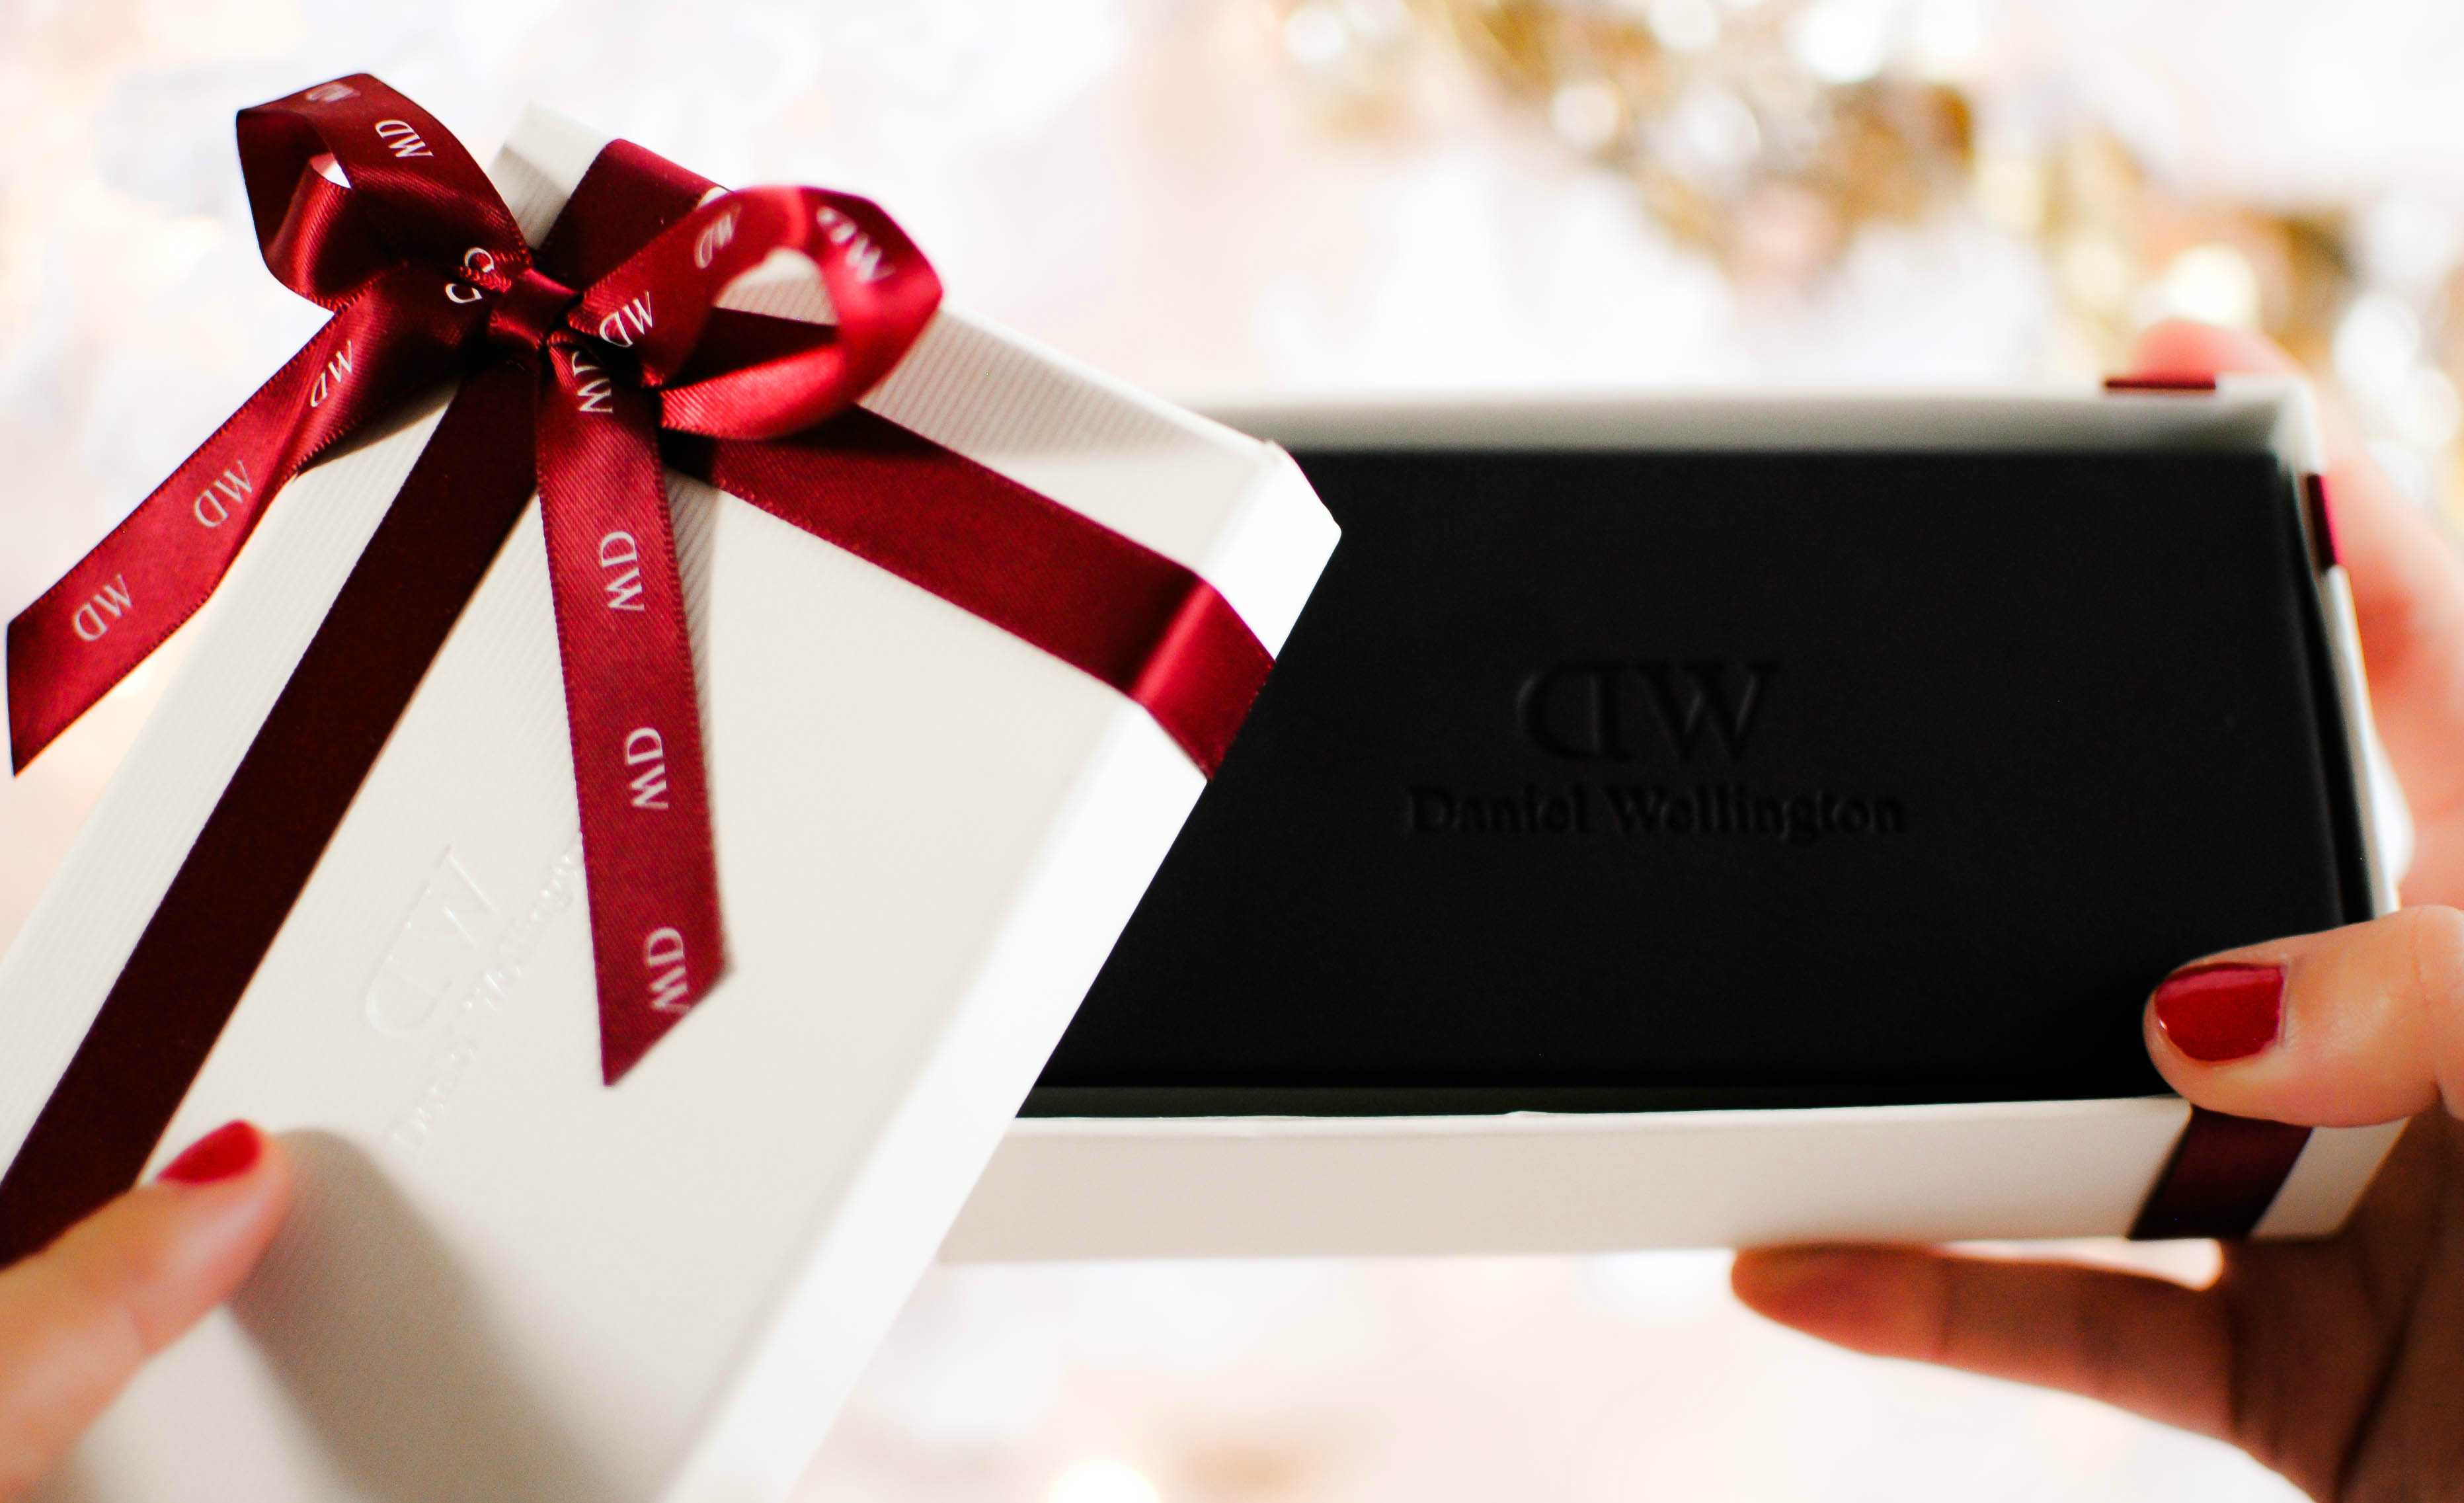 dda8c2d9e90f Vanessa-Lambert-blogger-behind-What-Would-V-Wear-wears -the-perfect-holiday-gift-a-classic-black-Daniel-Wellington-watch-_2-1